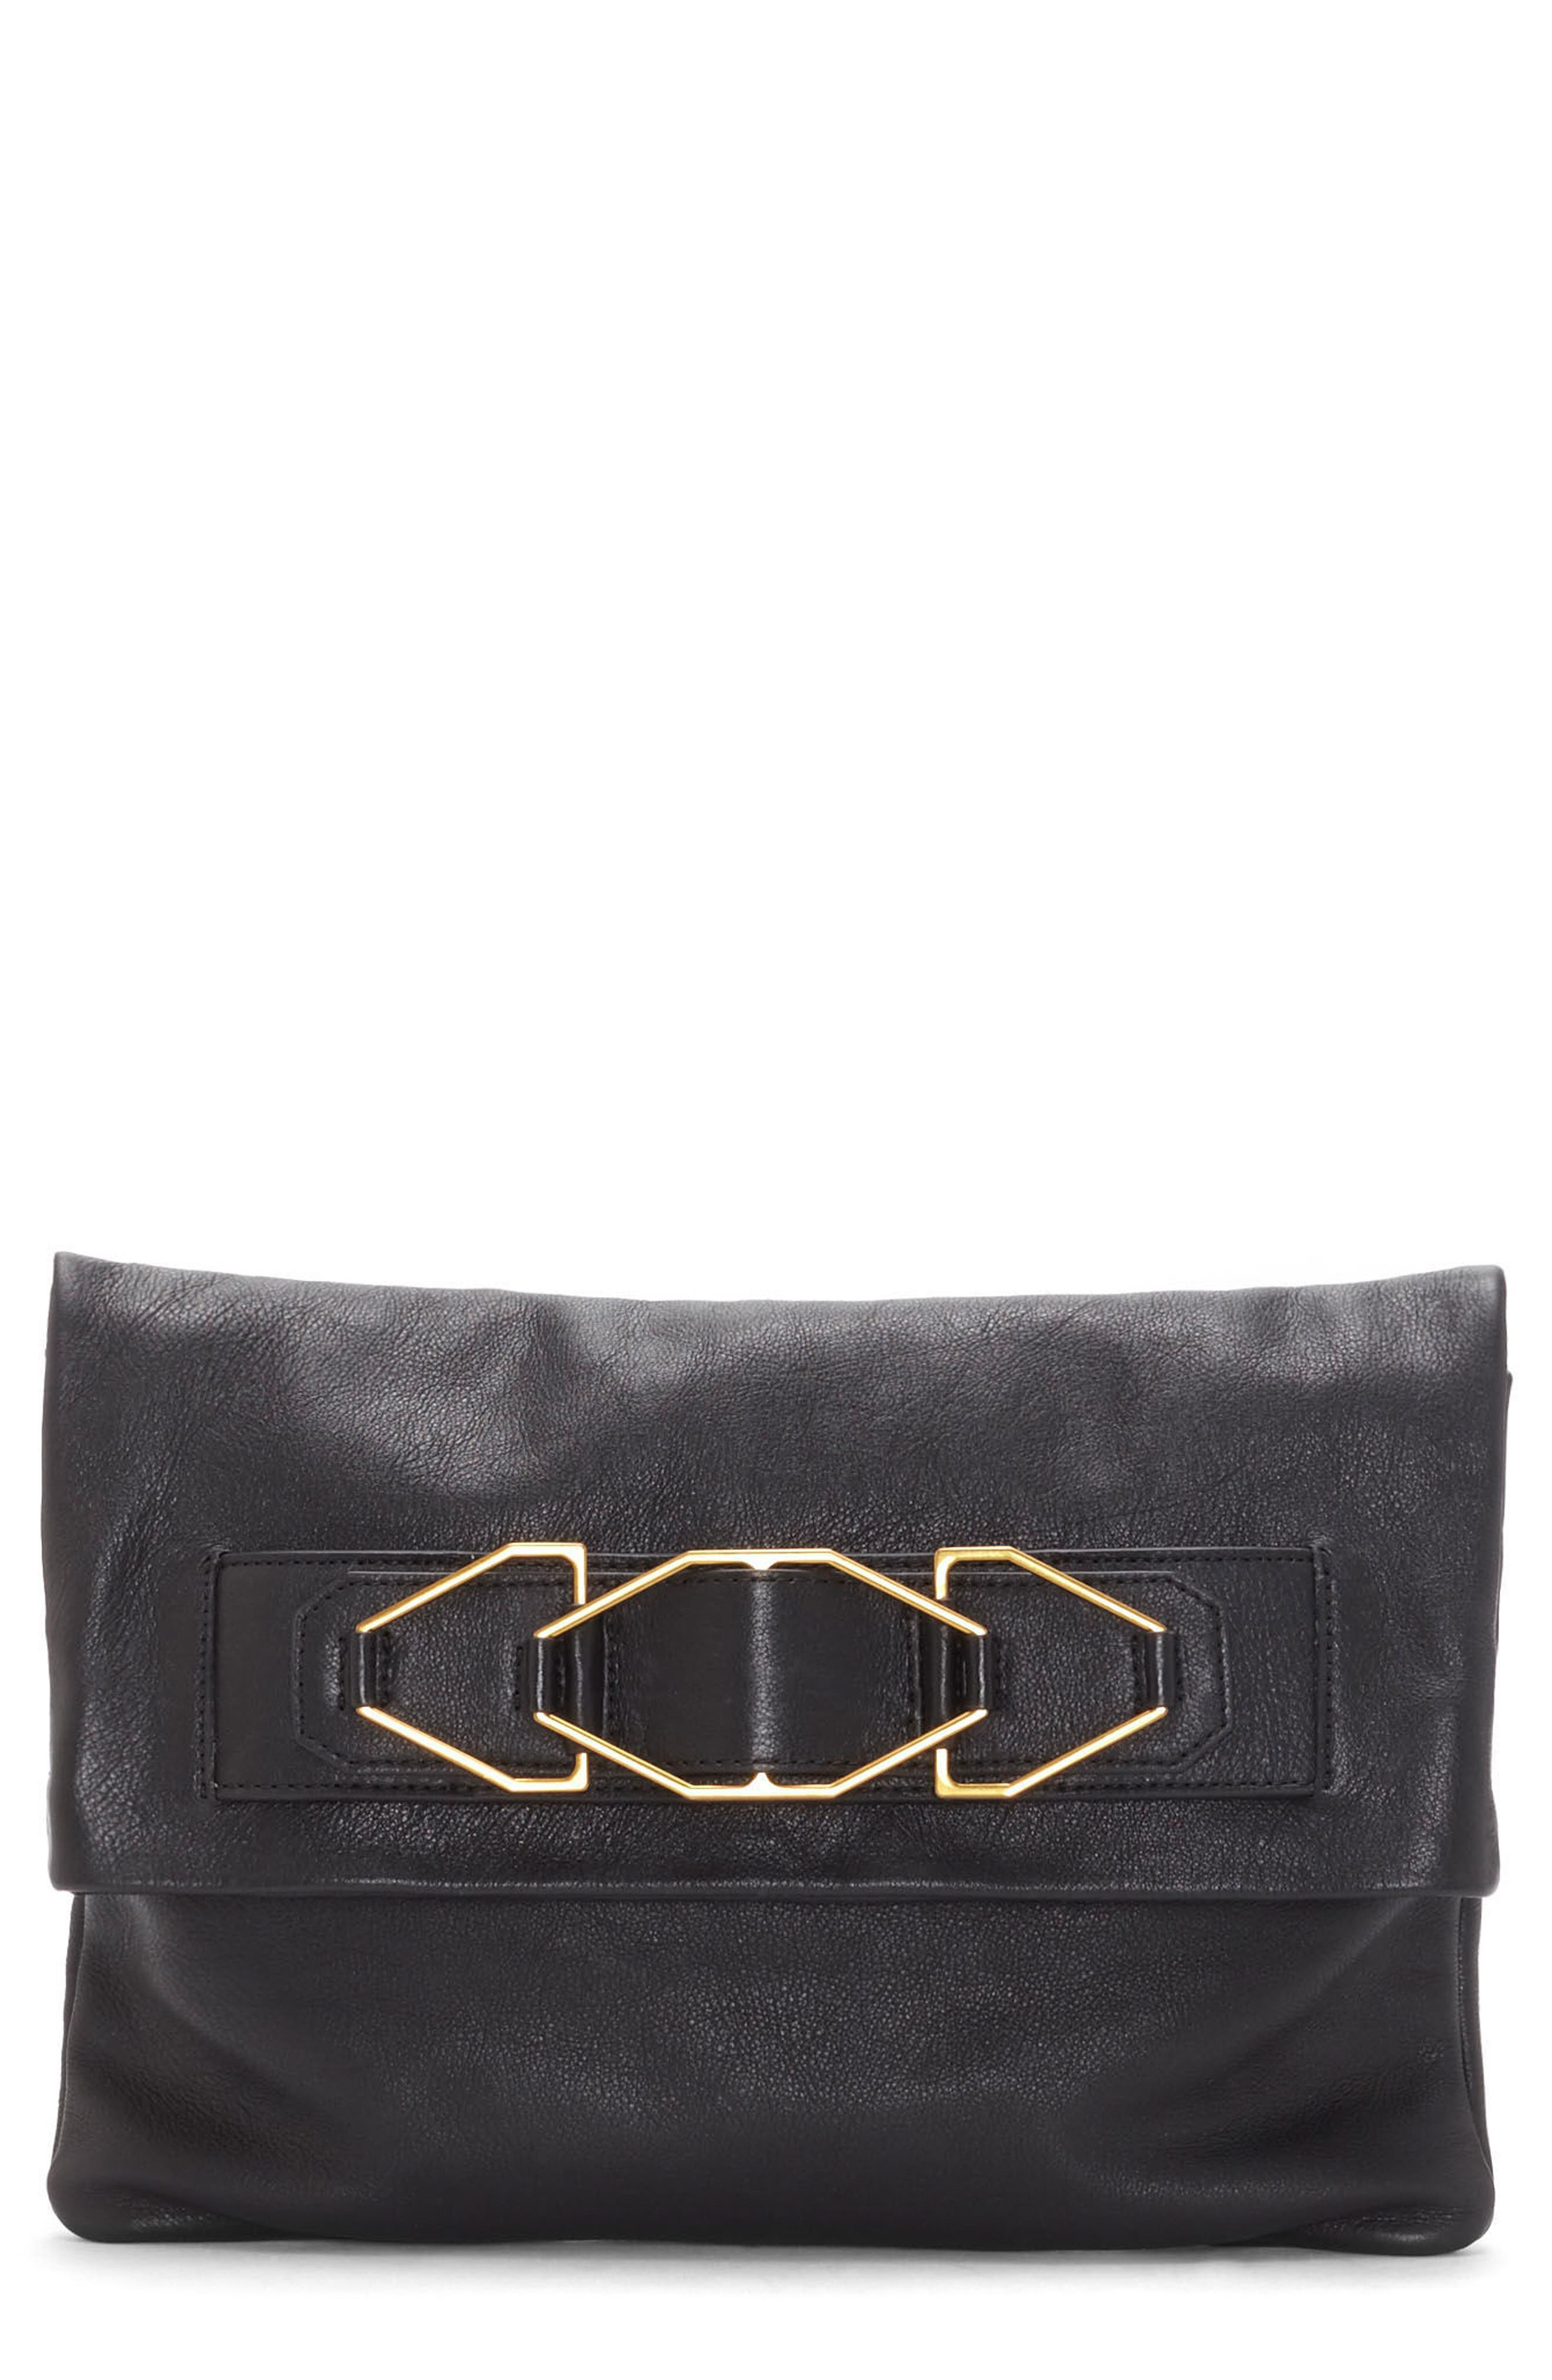 Alternate Image 1 Selected - Vince Camuto Luk Leather Foldover Clutch